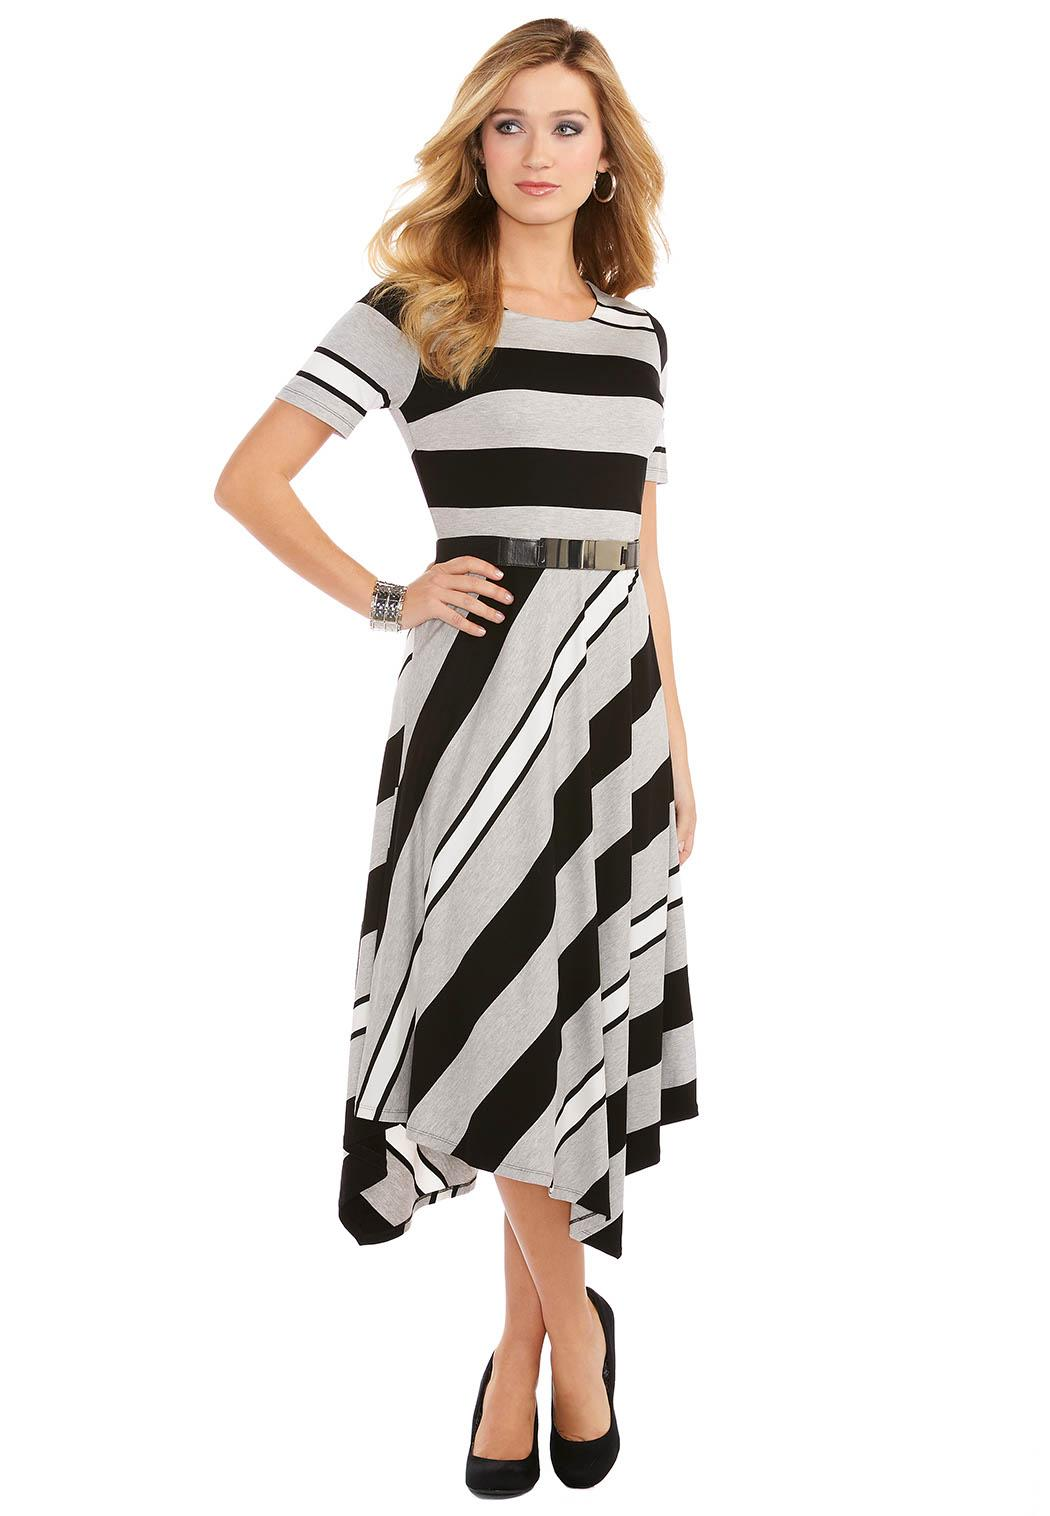 Cato Women's Plus Size Fashions Cato Plus Size Dresses